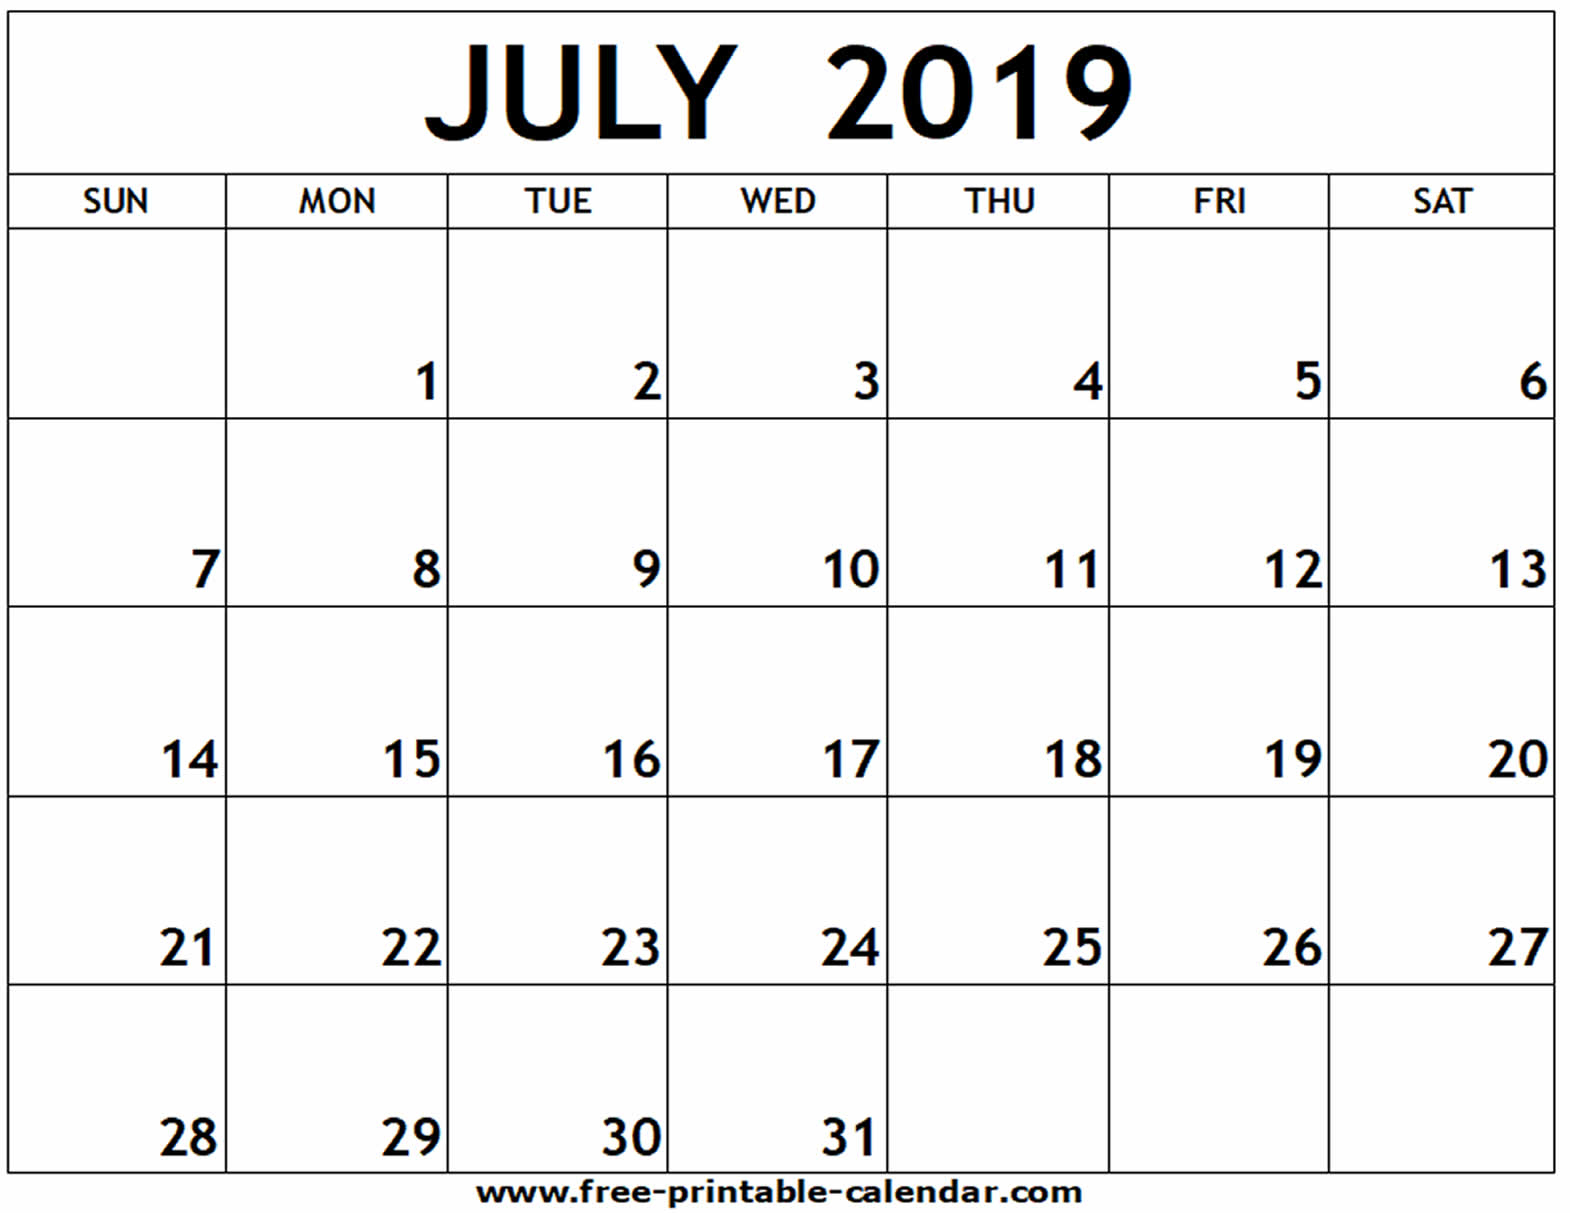 July 2019 Printable Calendar - Free-Printable-Calendar with Fill In Blank Calendar